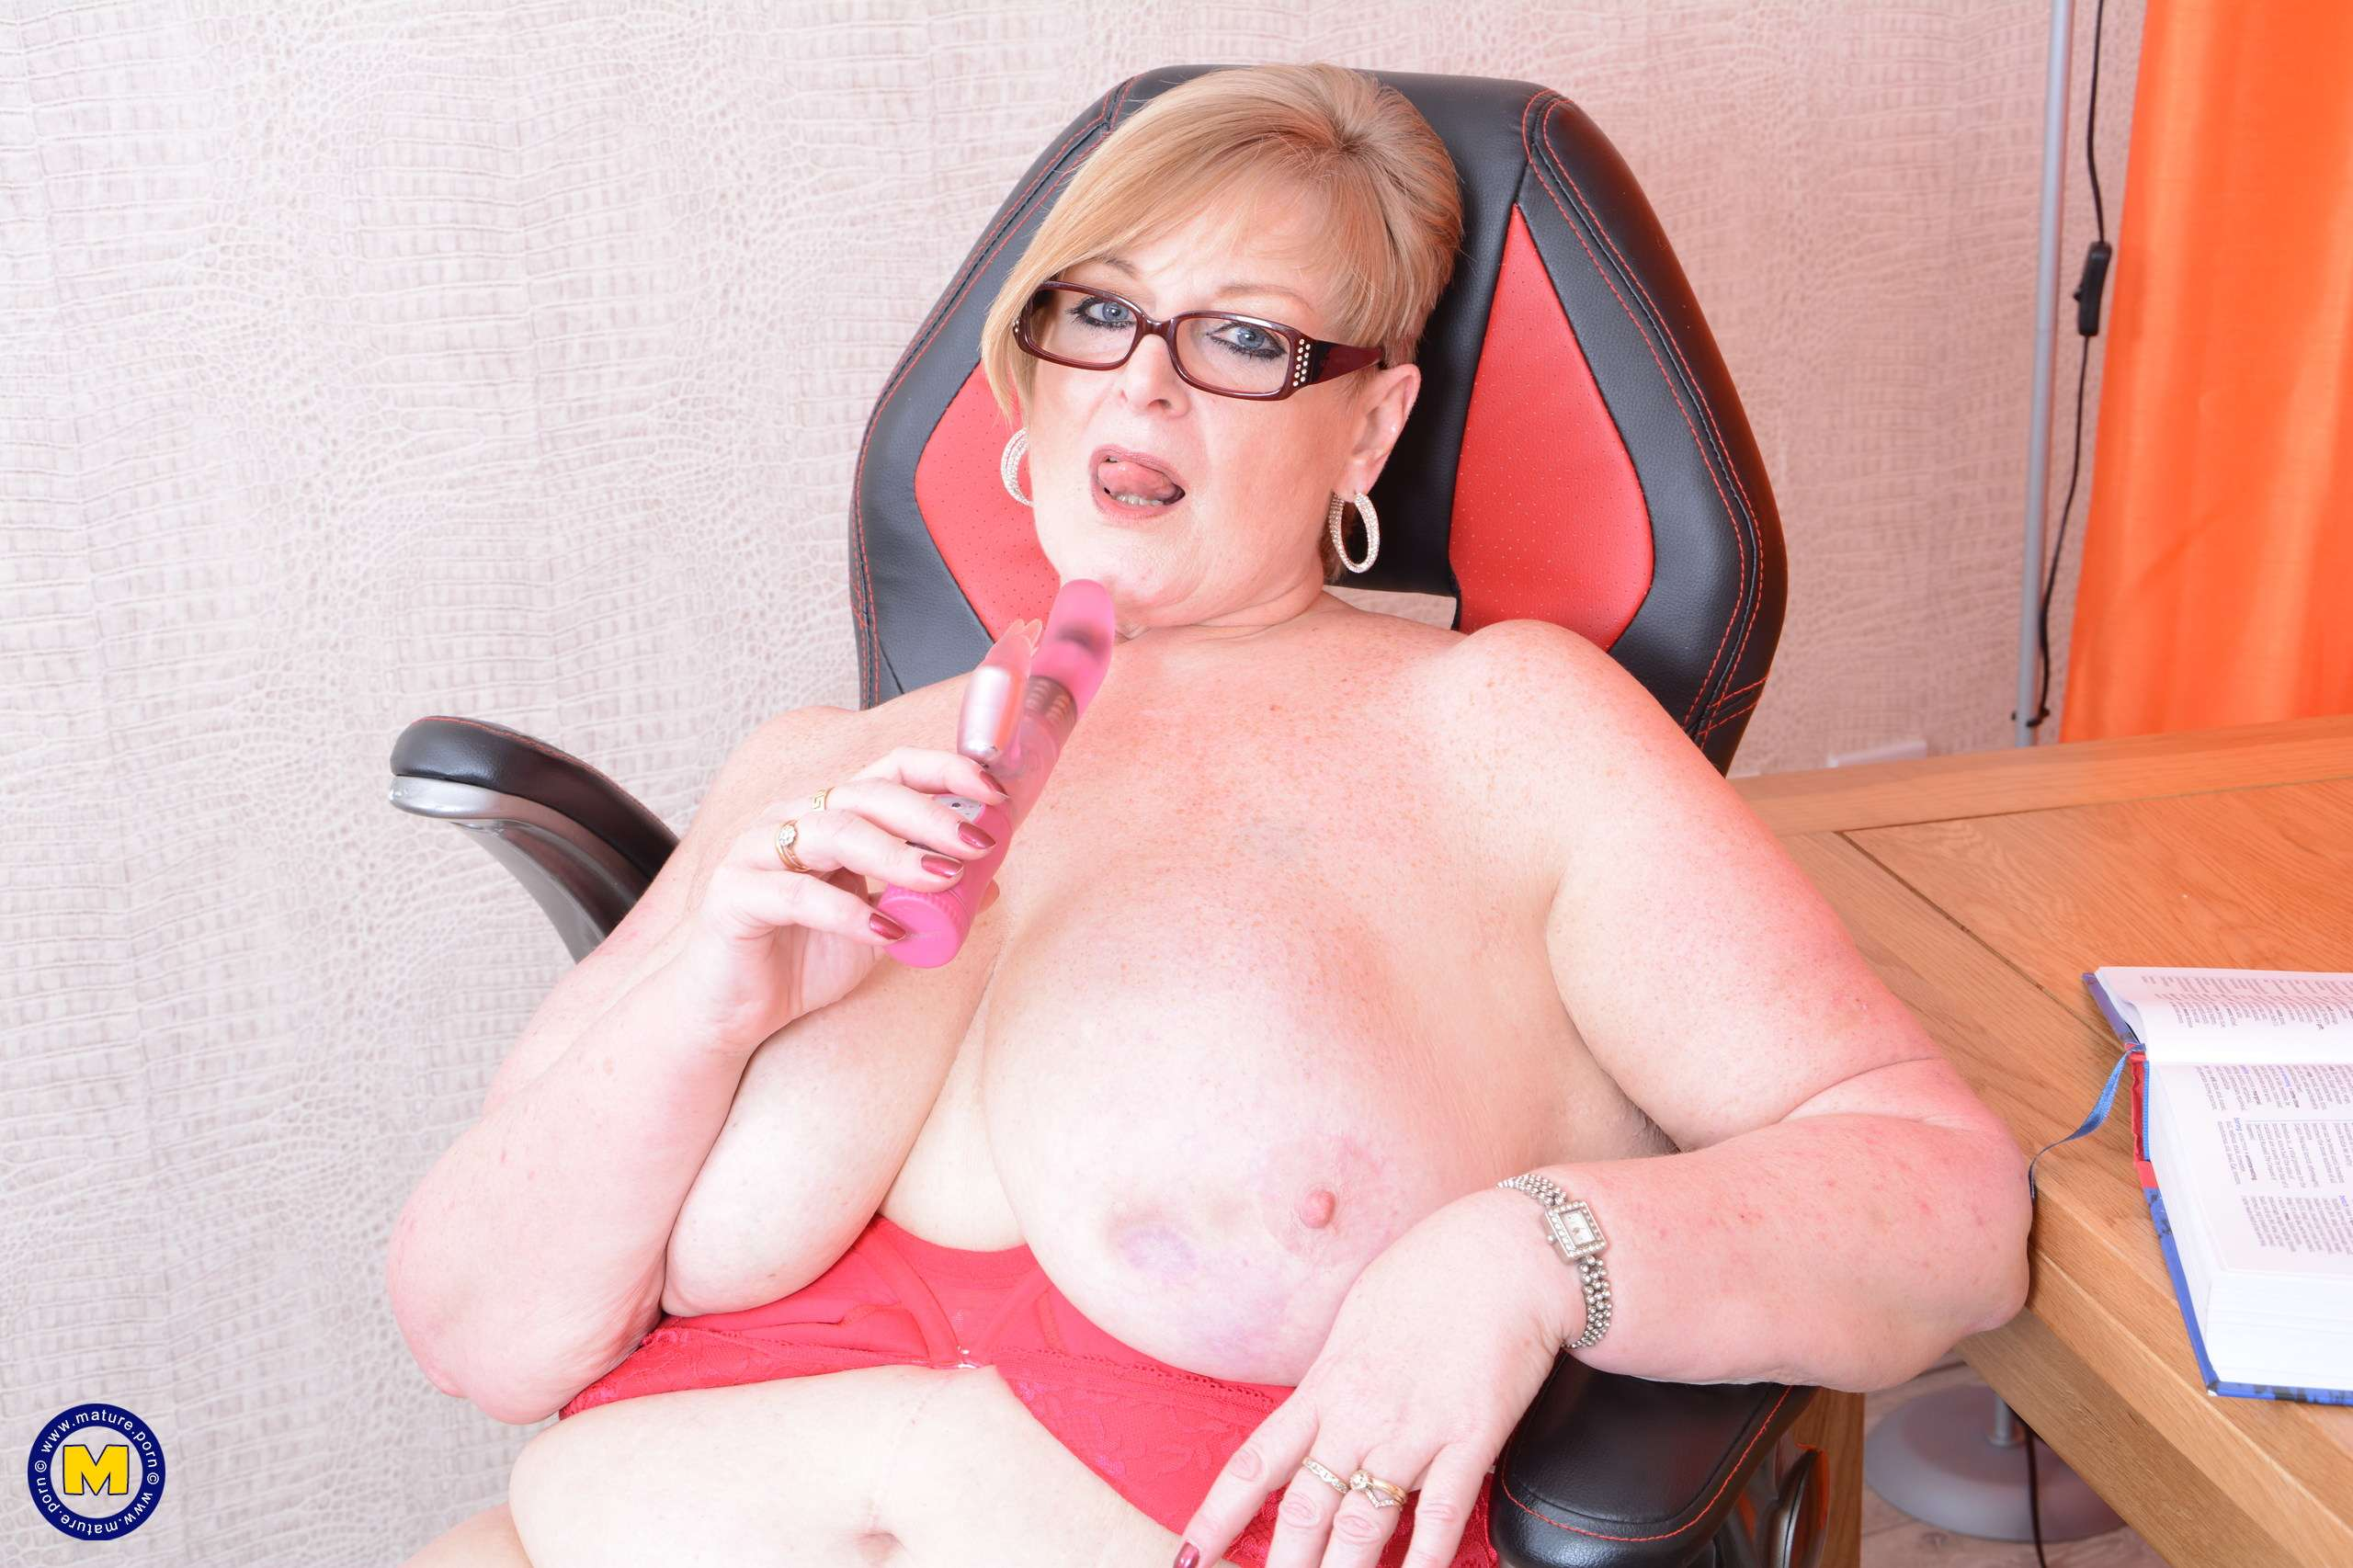 Naughty big lady showing off her huge breasts